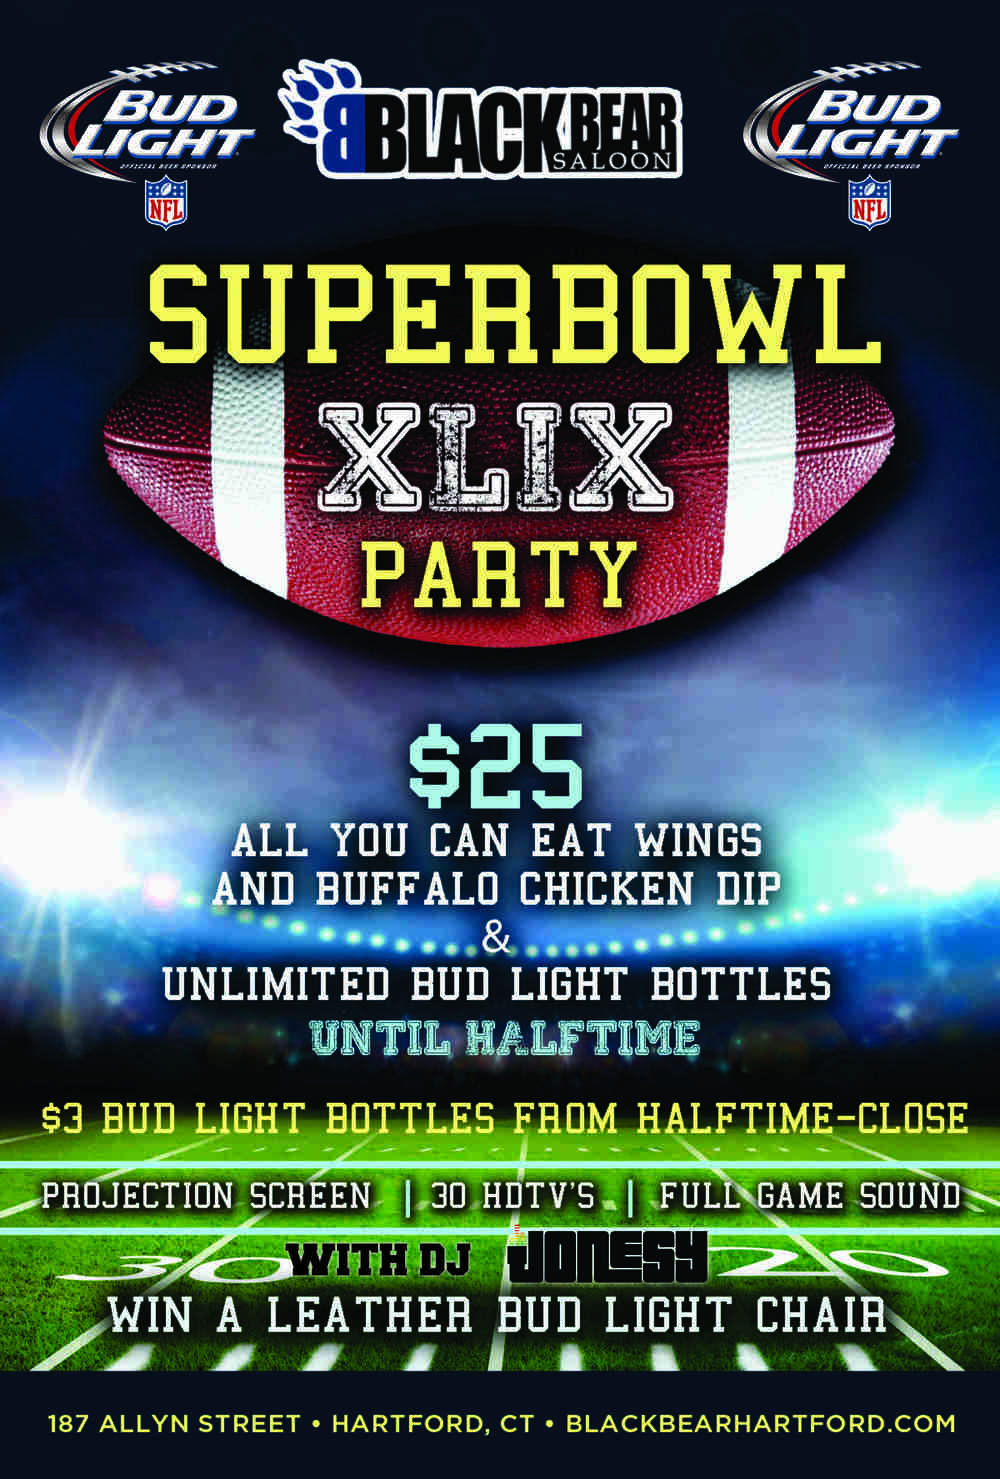 SUPER BOWL SUNDAY JOIN US AT BLACK BEAR FOR THE GAME!  $25 BUYS YOU ALL YOU CAN EAT WINGS & BUFFALO CHICKEN DIP + UNLIMITED BUD LIGHT BOTTLES UNTIL HALFTIME.  $3 BUD LIGHT BOTTLES FROM HALFTIME - CLOSE.  LEATHER BUD LIGHT CHAIR GIVEAWAY!  MUSIC BY DJ JONESY DURING COMMERCIAL BREAKS, HALFTIME + POST GAME. FACEBOOK INVITE